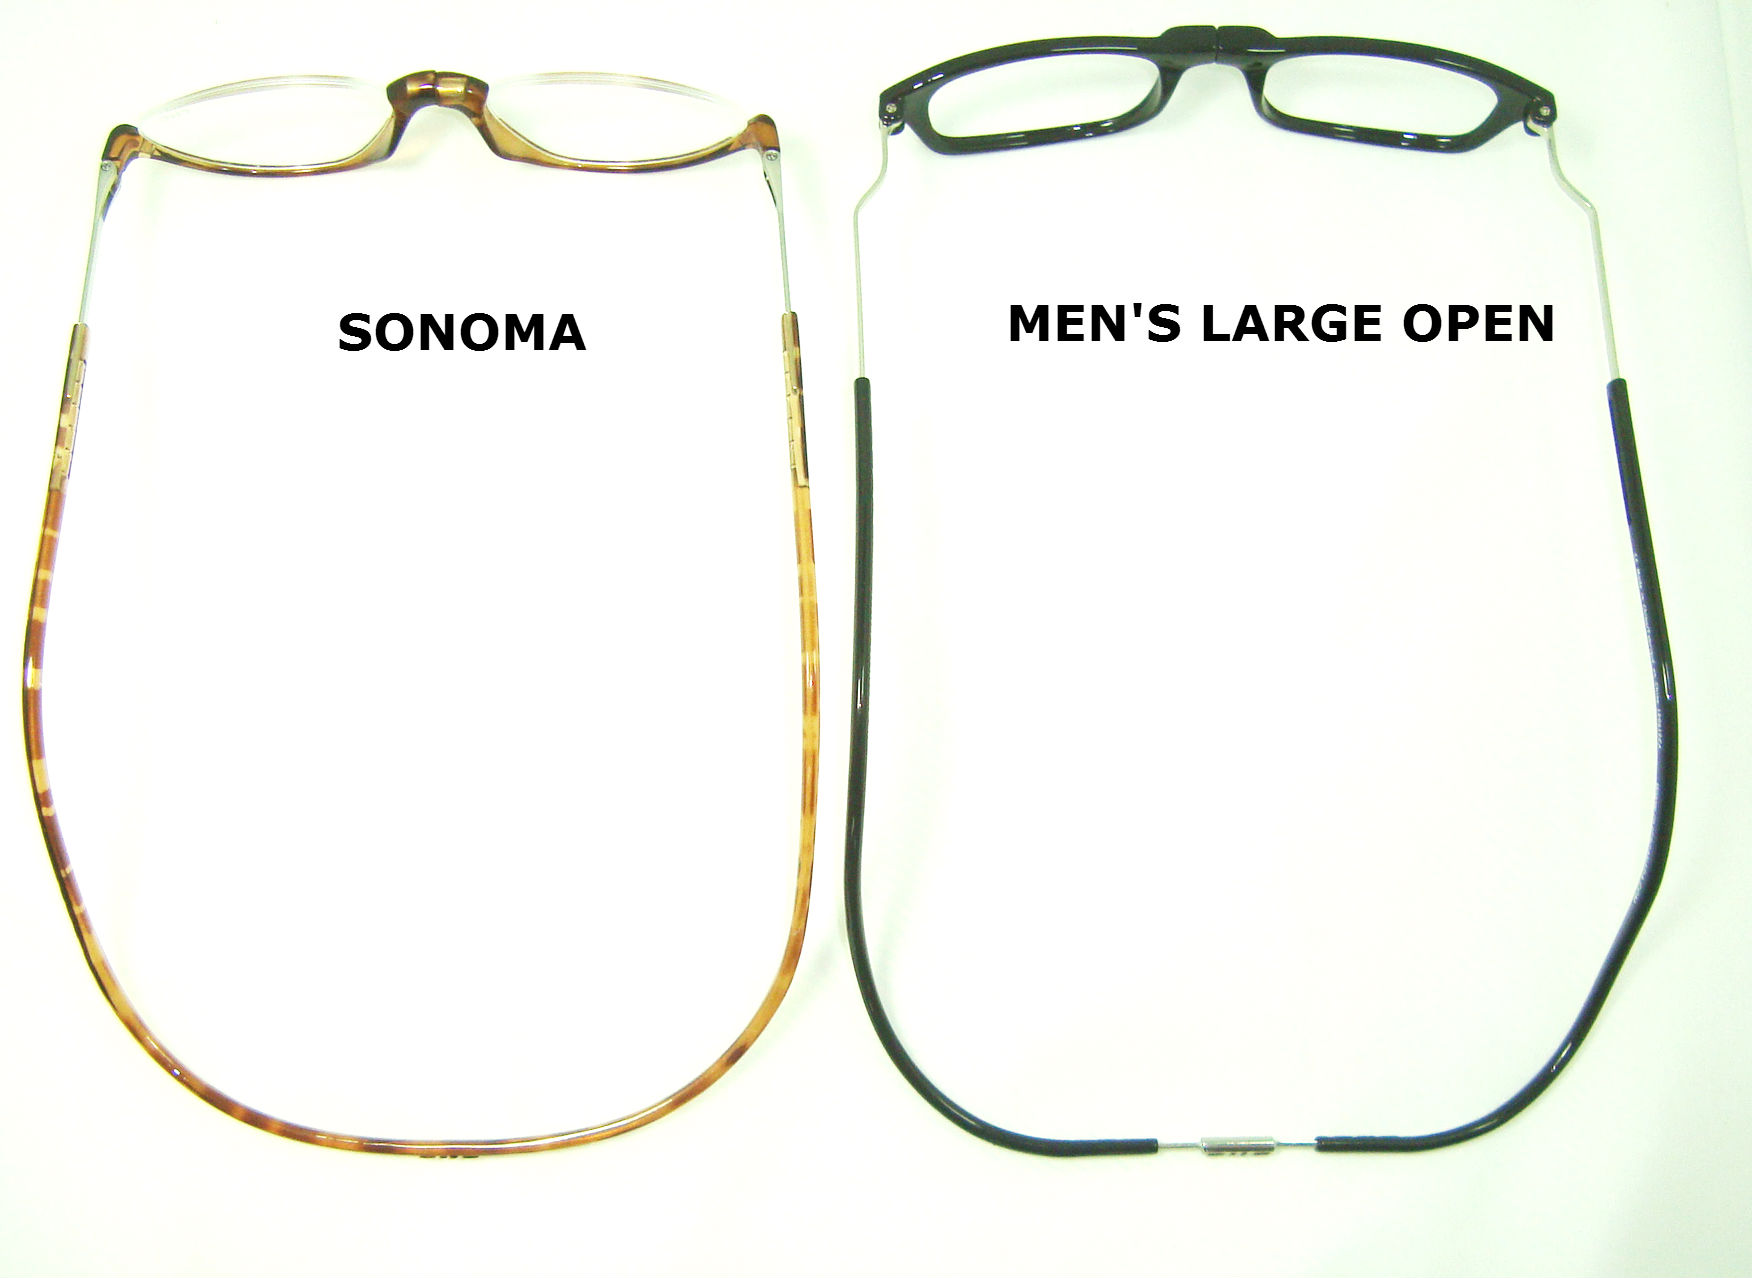 SONOMA&MEN'S LARGE WEB